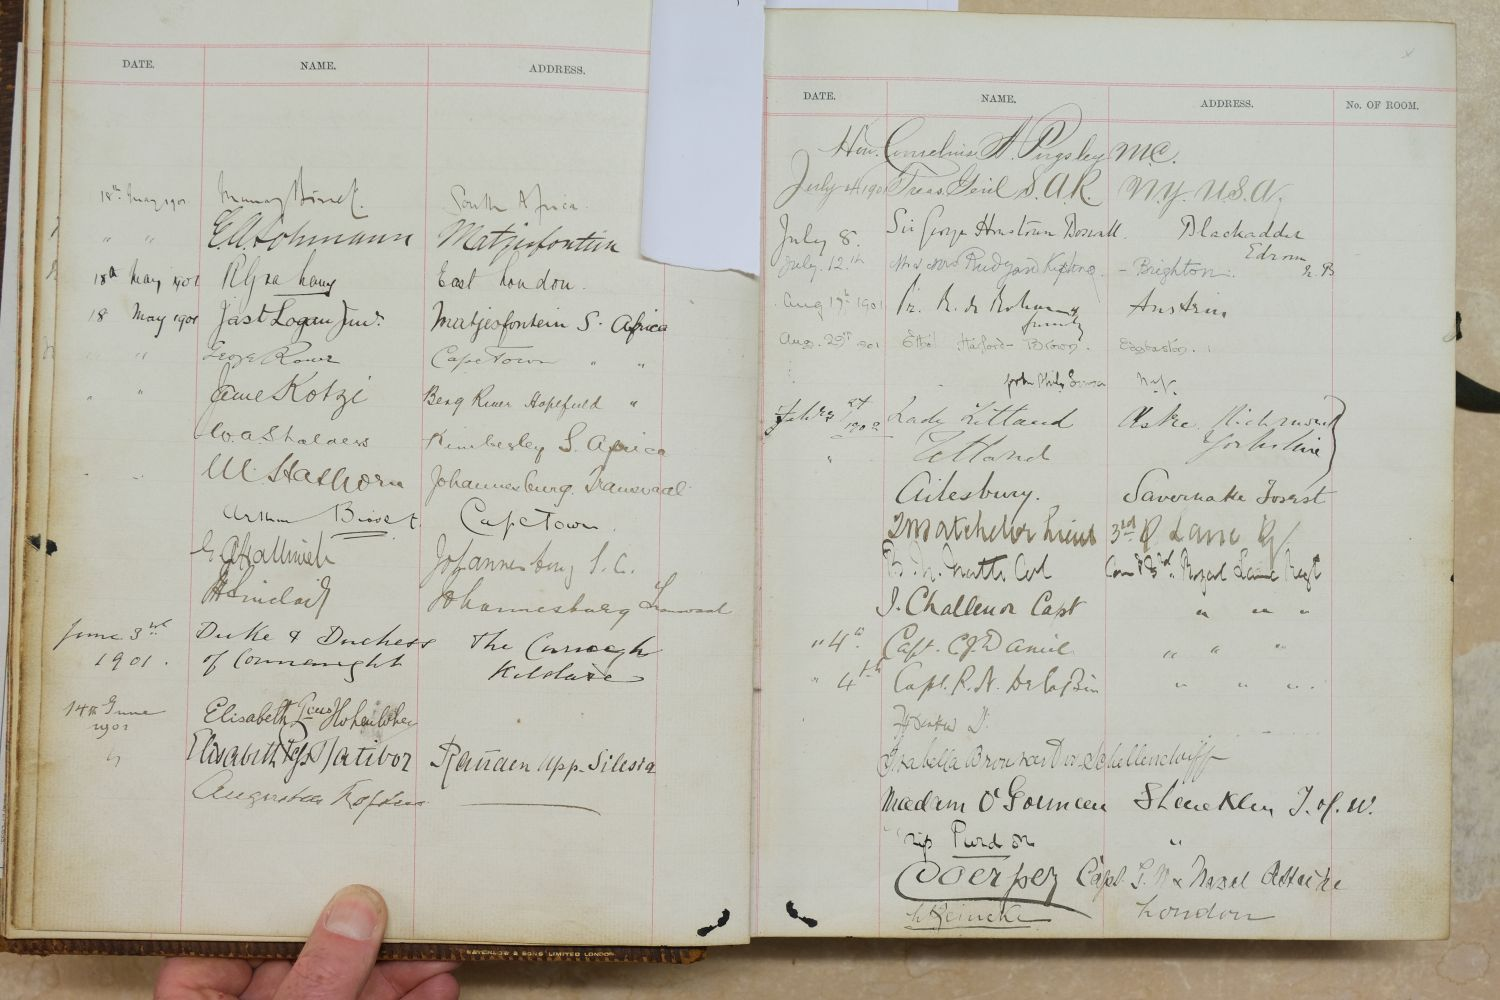 Visitors' Book. South Western Hotel, Southampton. A visitors' book, circa 1899-1912 - Image 8 of 16